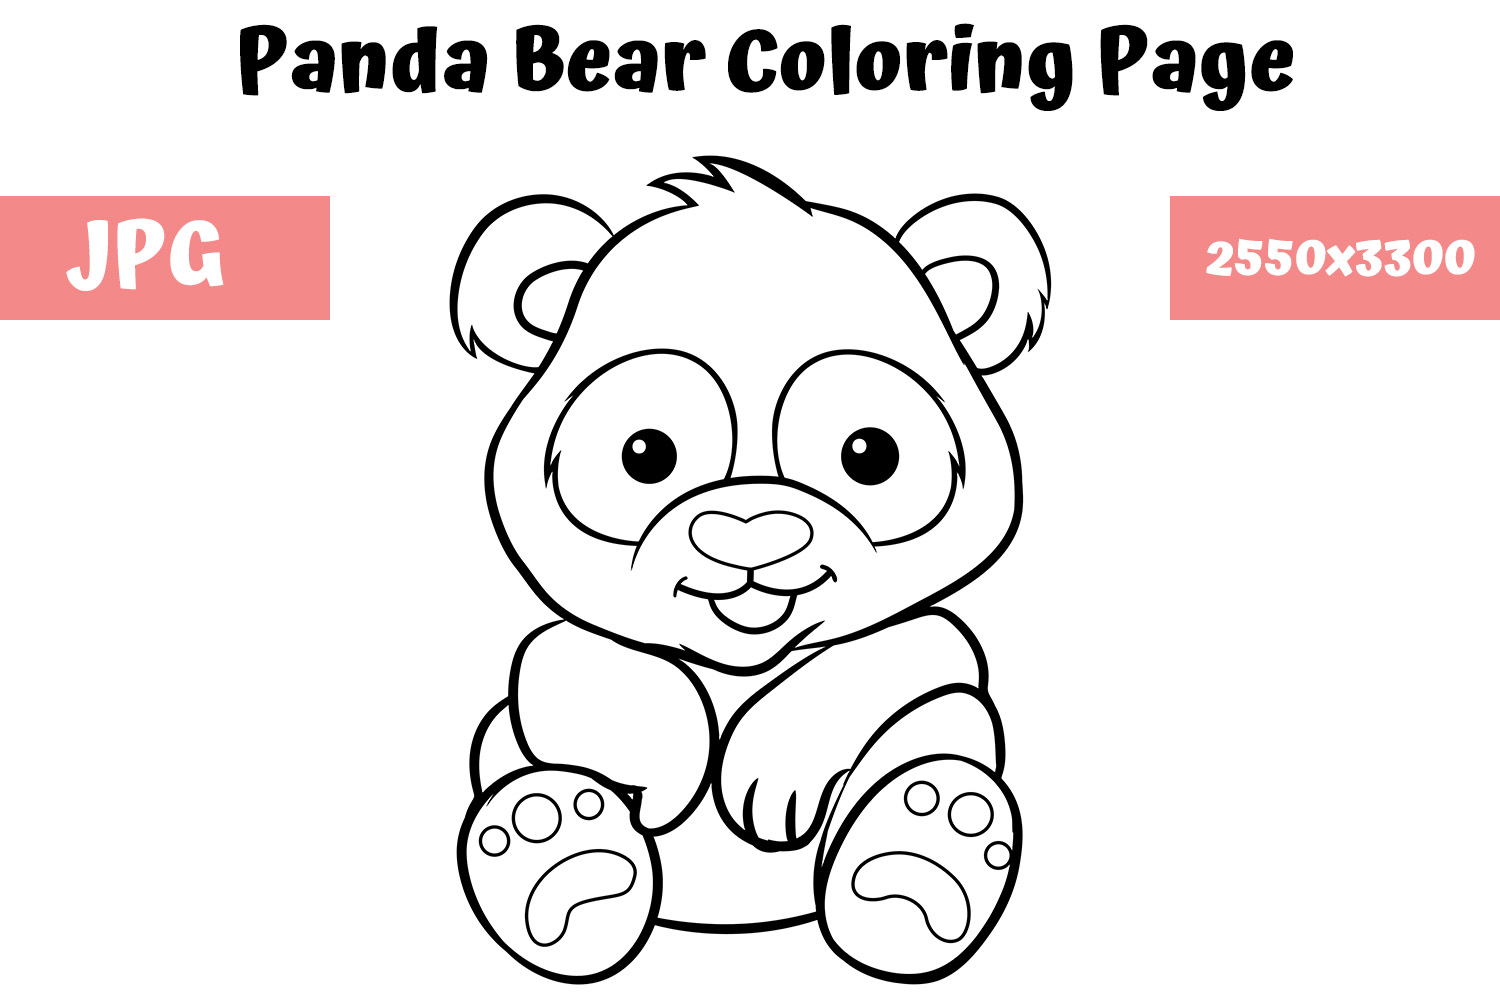 Top 25 Free Printable Cute Panda Bear Coloring Pages Online | Bear ... | 1000x1500